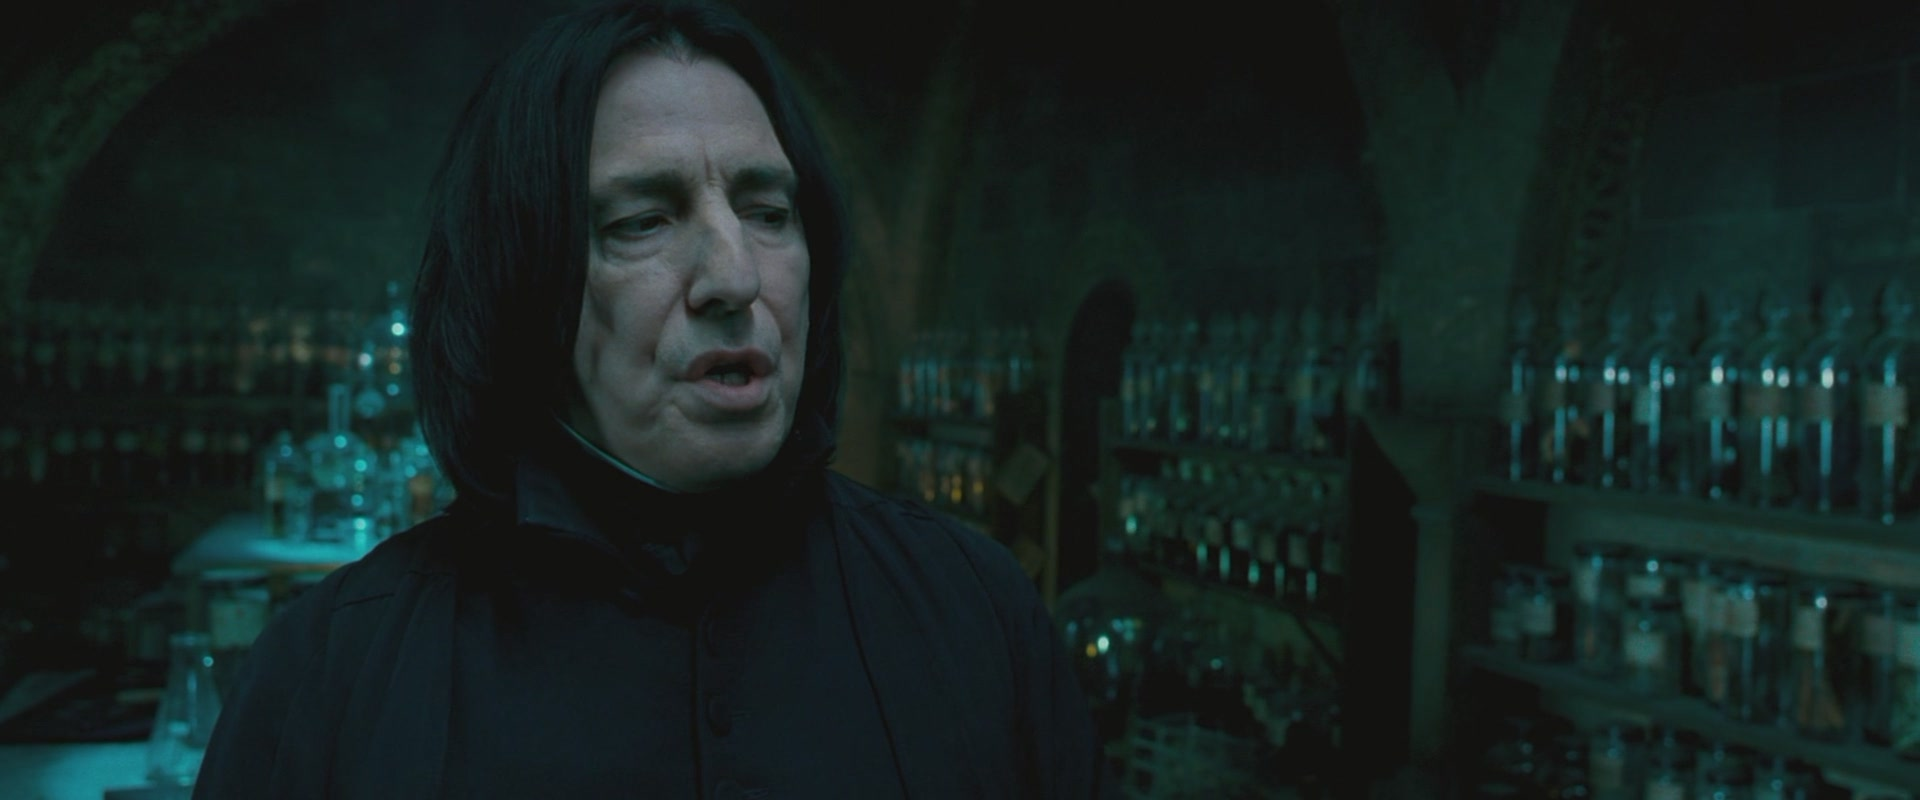 http://images5.fanpop.com/image/photos/27500000/Harry-Potter-and-the-Order-of-the-Phoenix-BluRay-severus-snape-27574052-1920-800.jpg